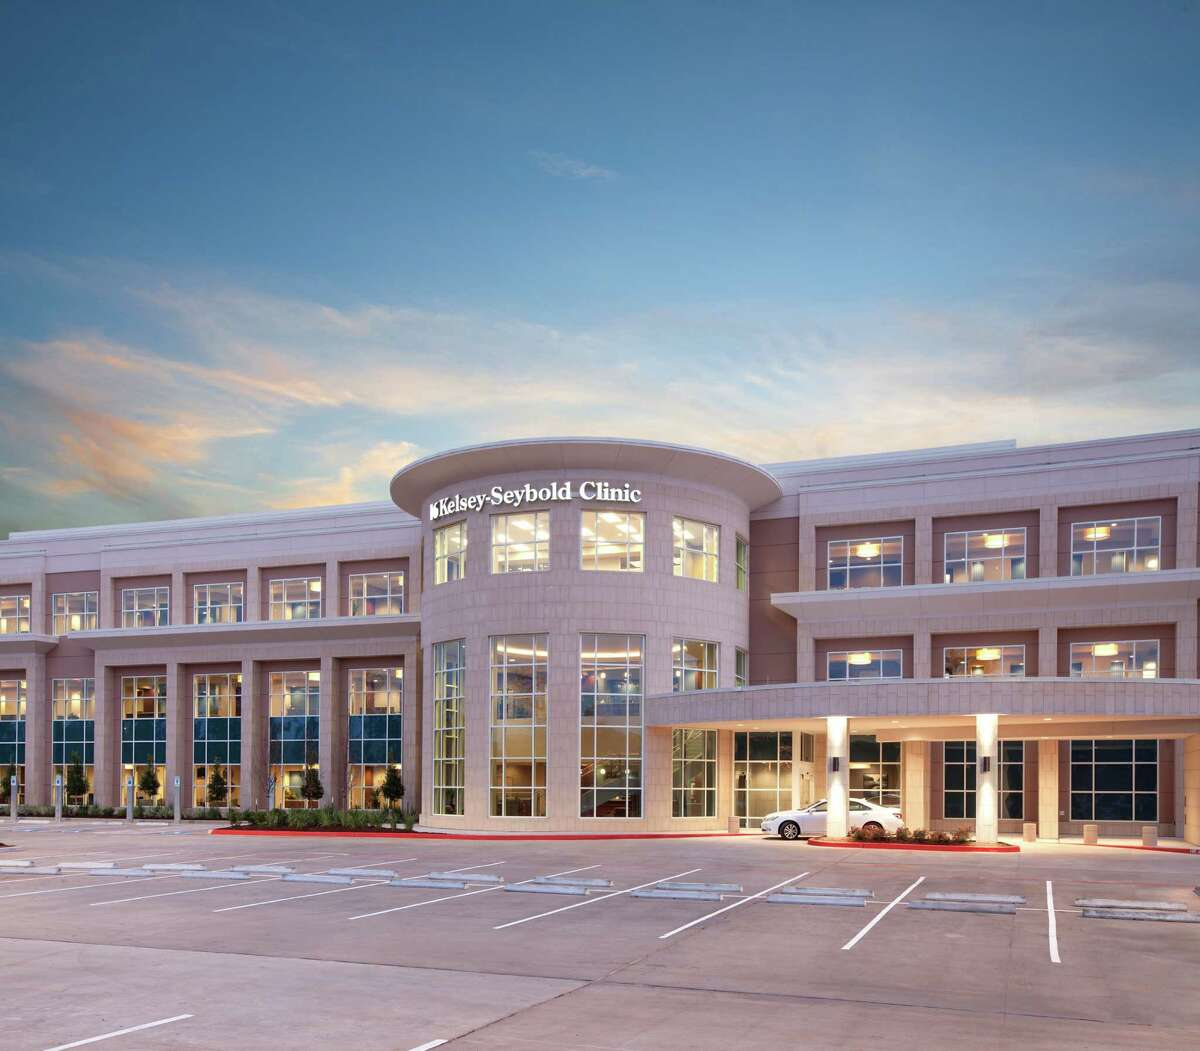 Kelsey-Seybold Clinic will acquire Conroe Family Medicine at the beginning of March. The Kelsey-Seybold Clinic - The Woodlands location is pictured above.